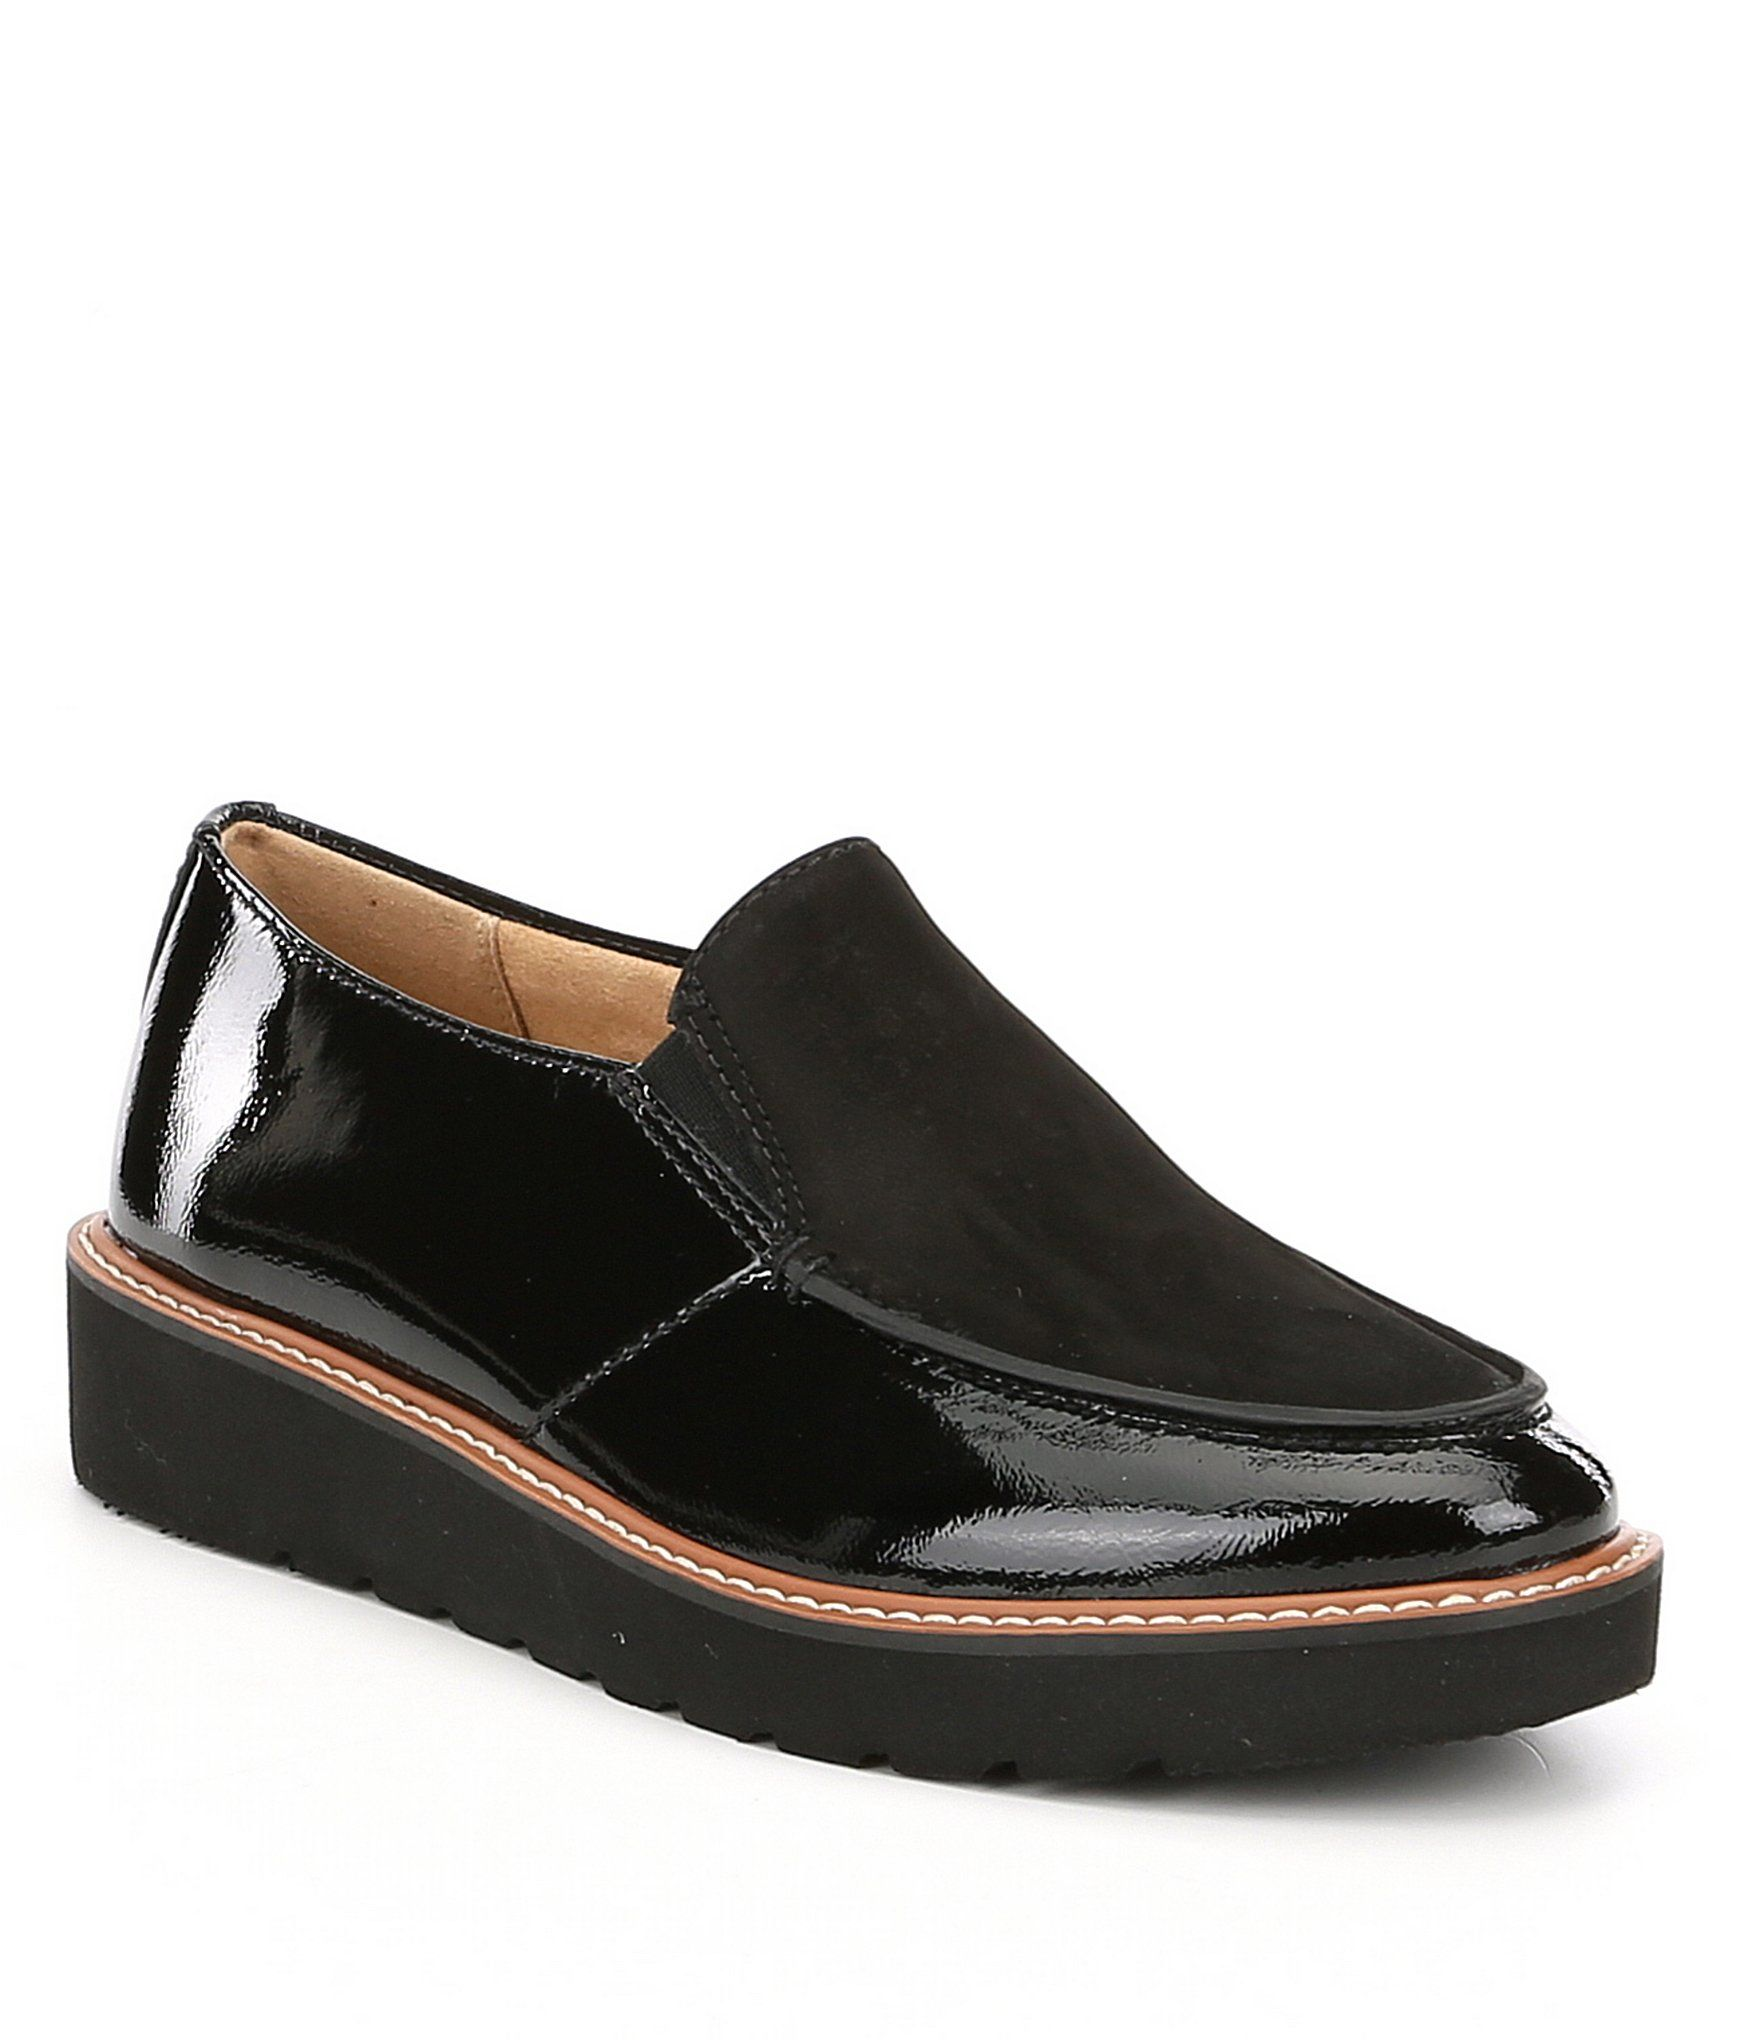 ef9a934719c Naturalizer Aibileen Patent Leather Slip-Ons